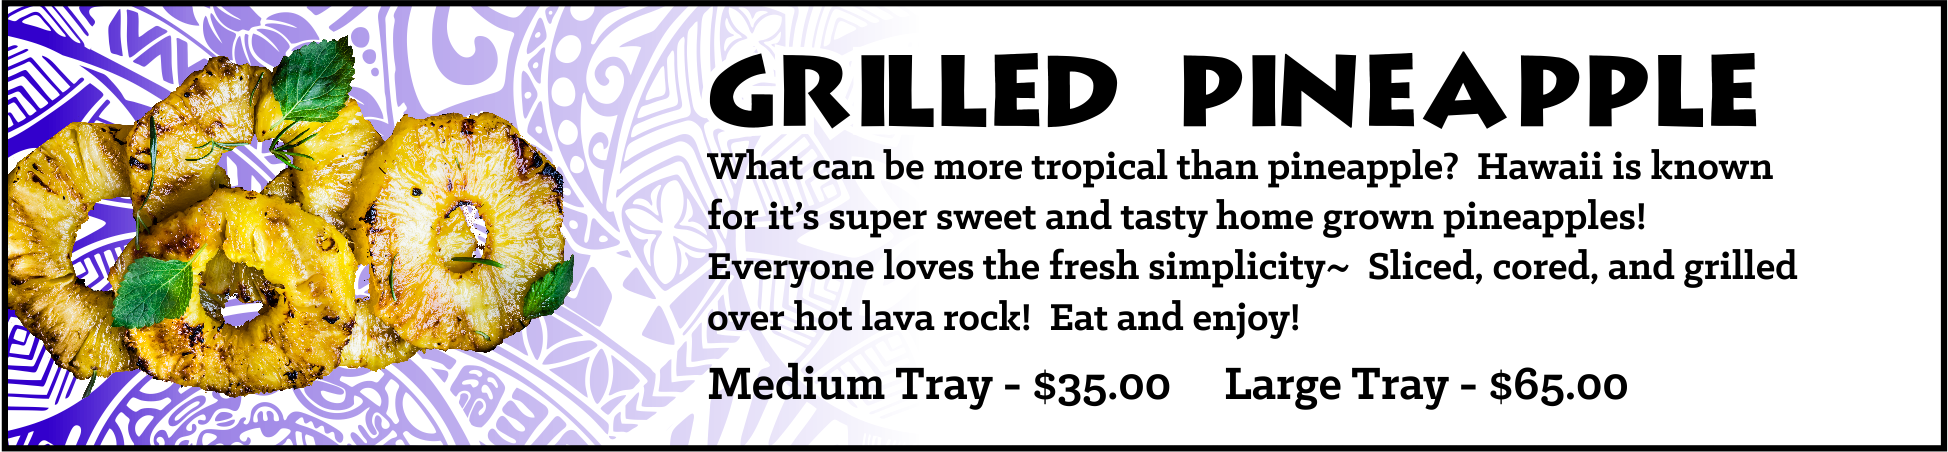 Grilled Pineapple.png